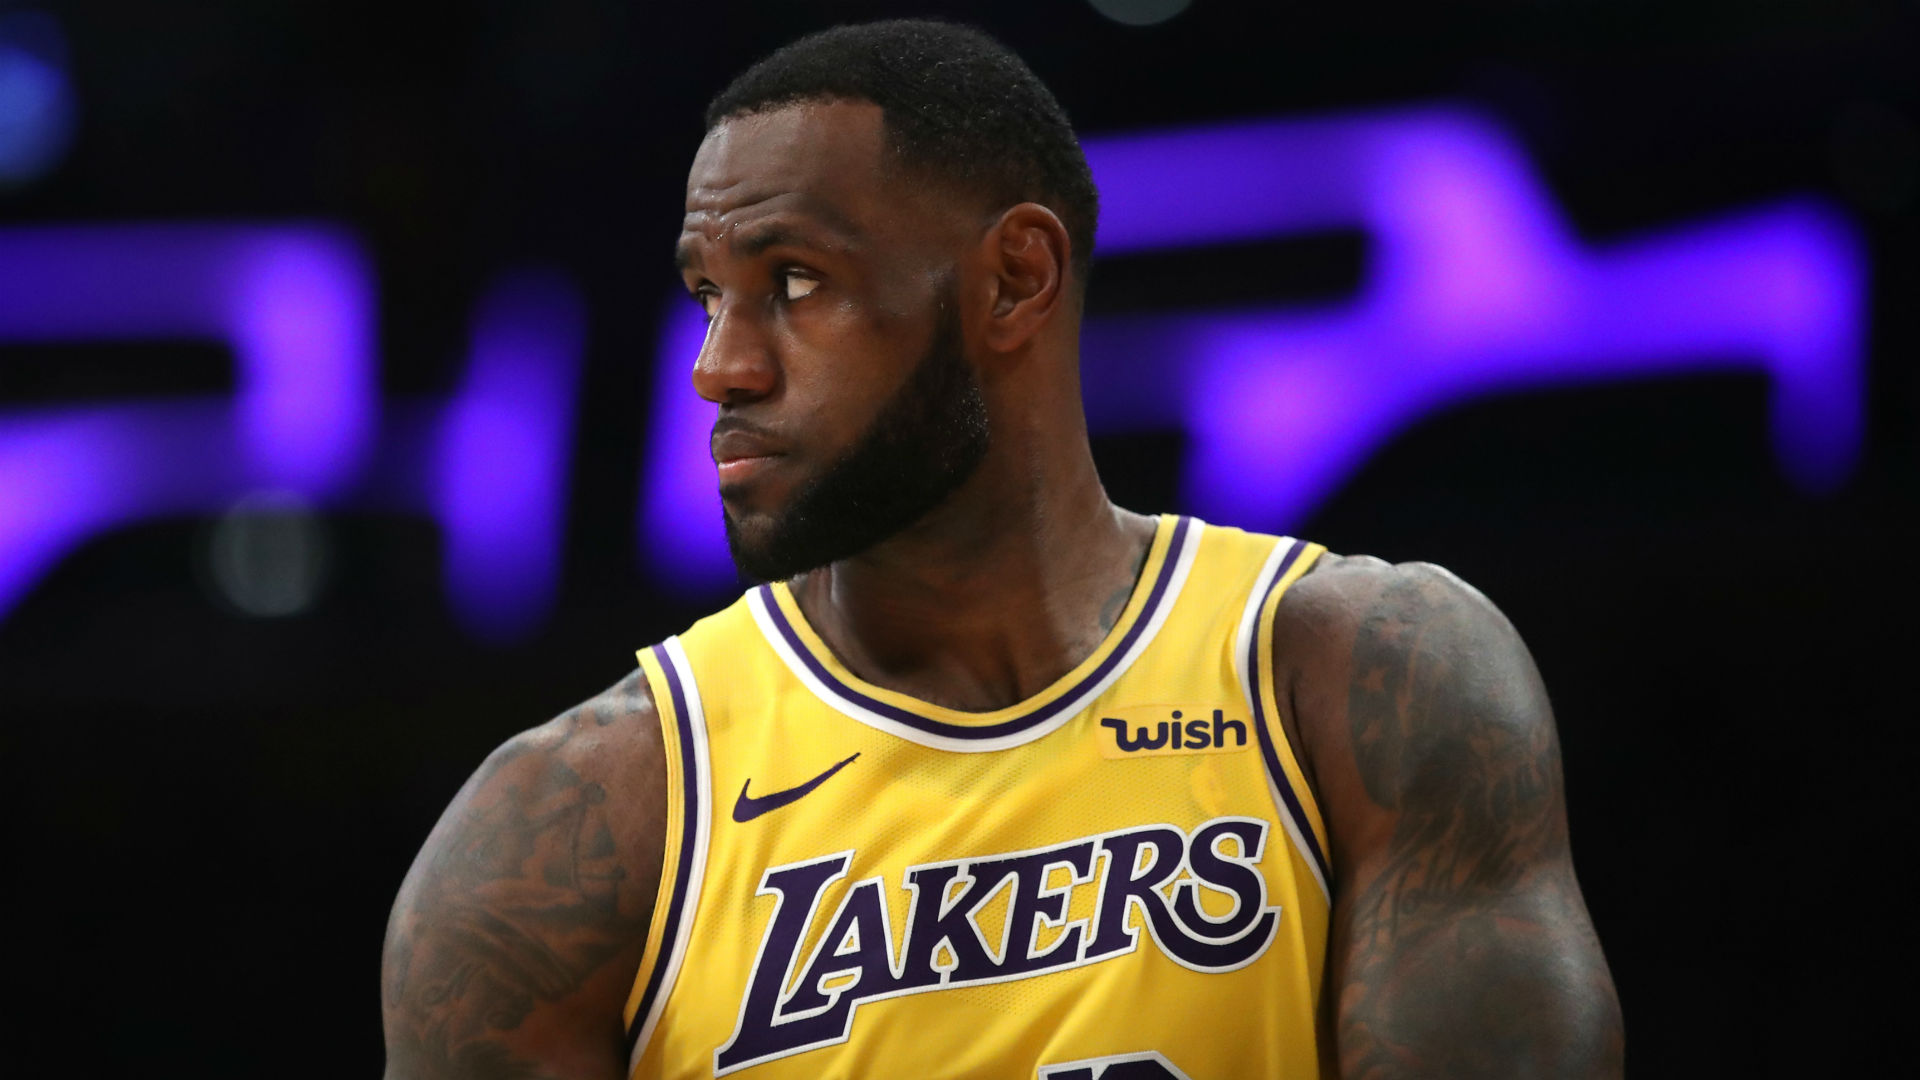 7faa7d30ad8 Lakers free agency rumors: LeBron James has been in 'contact' with Kawhi  Leonard